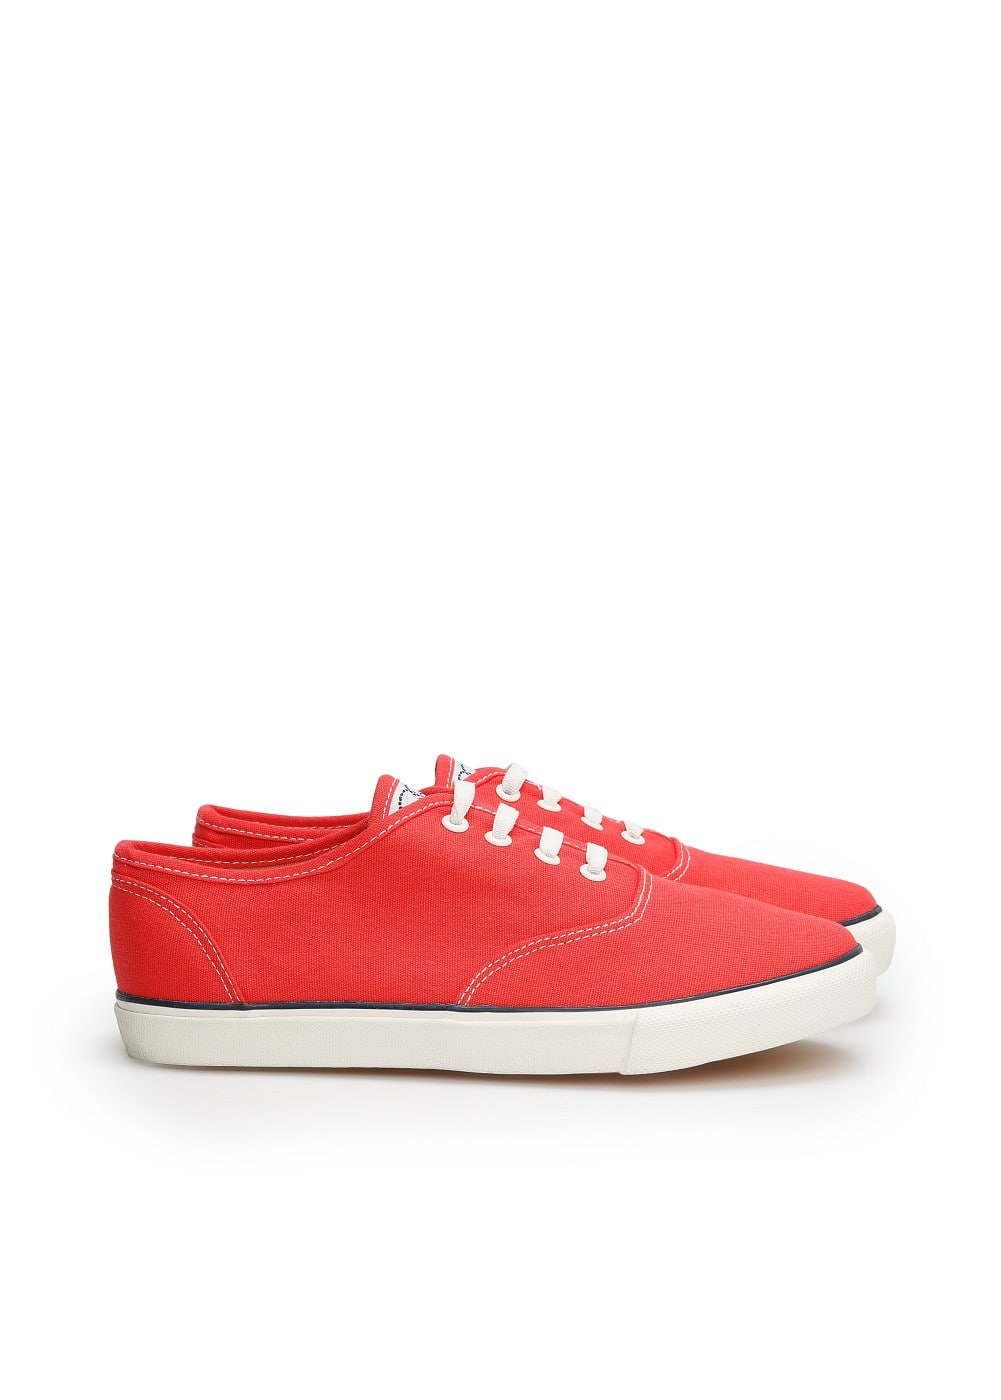 Lace-up canvas sneakers